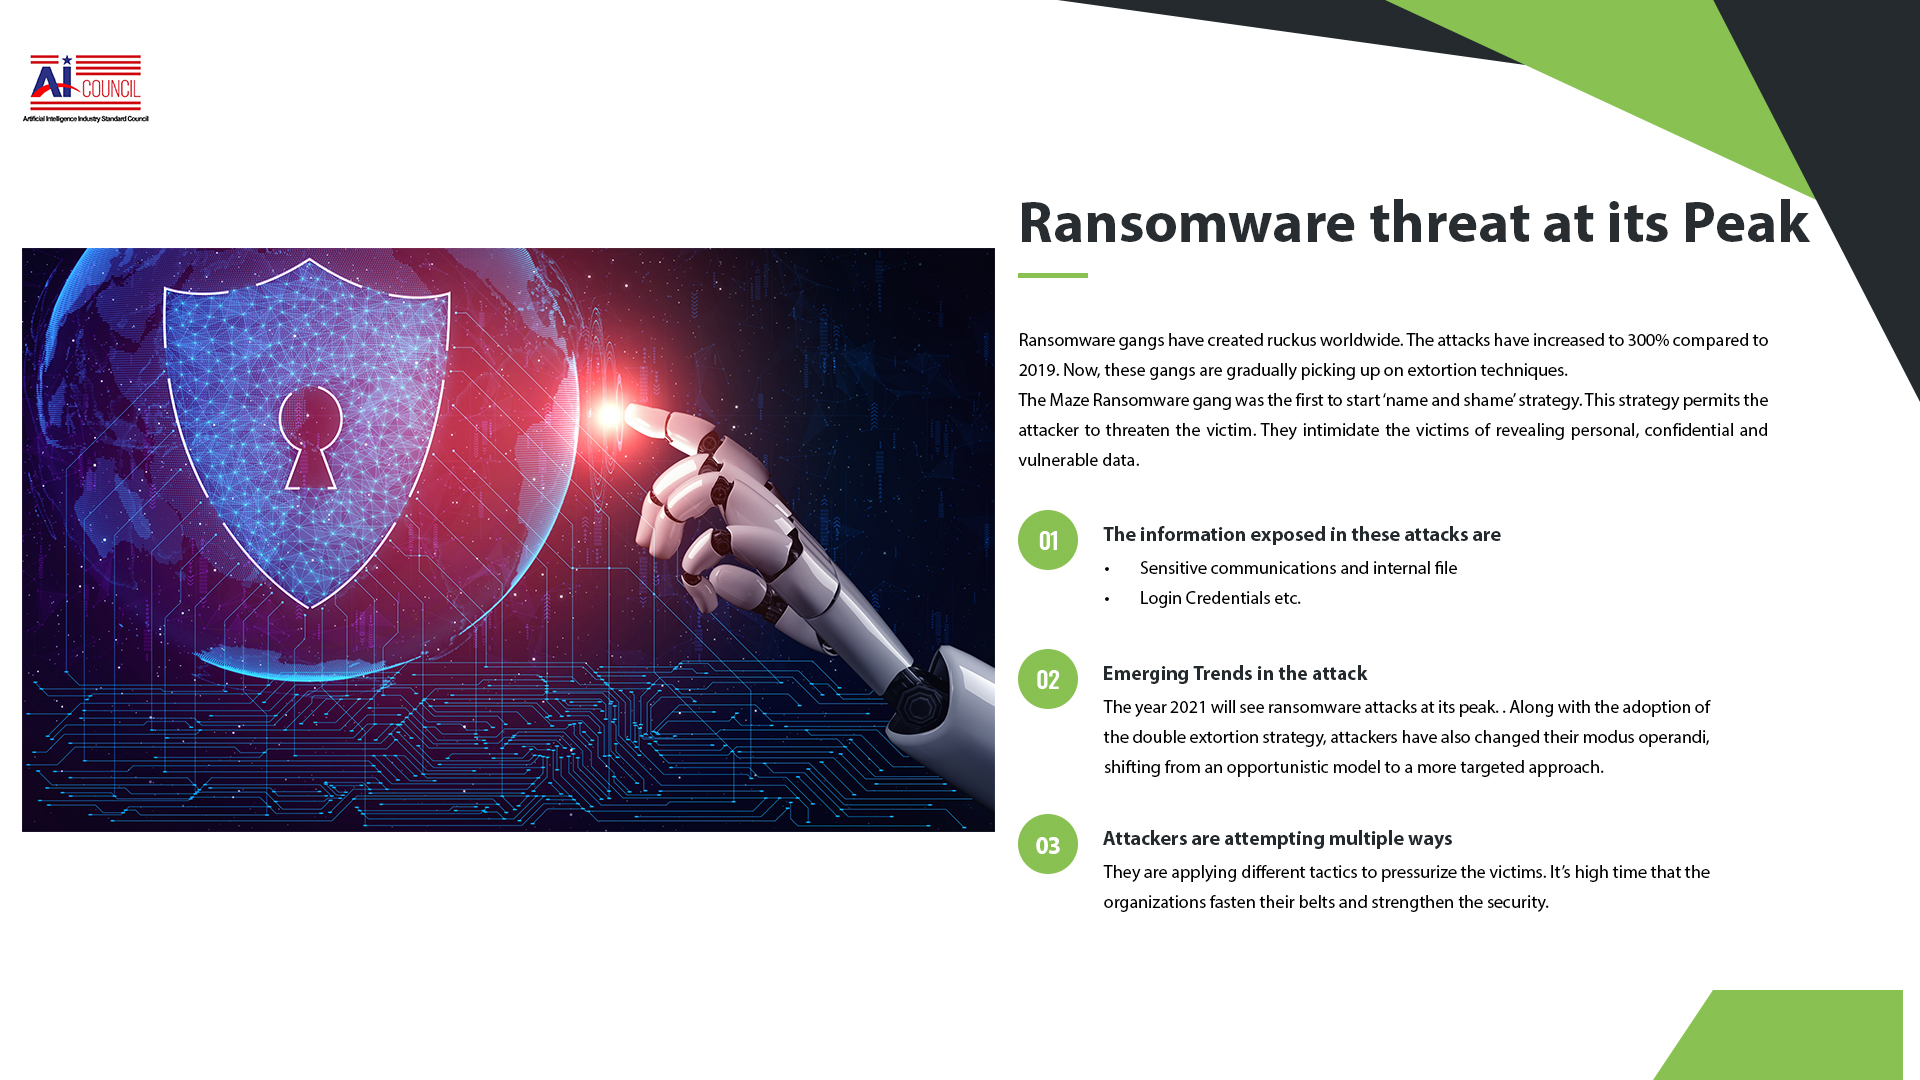 Ransomware Gangs & Their Threat at Its Peak